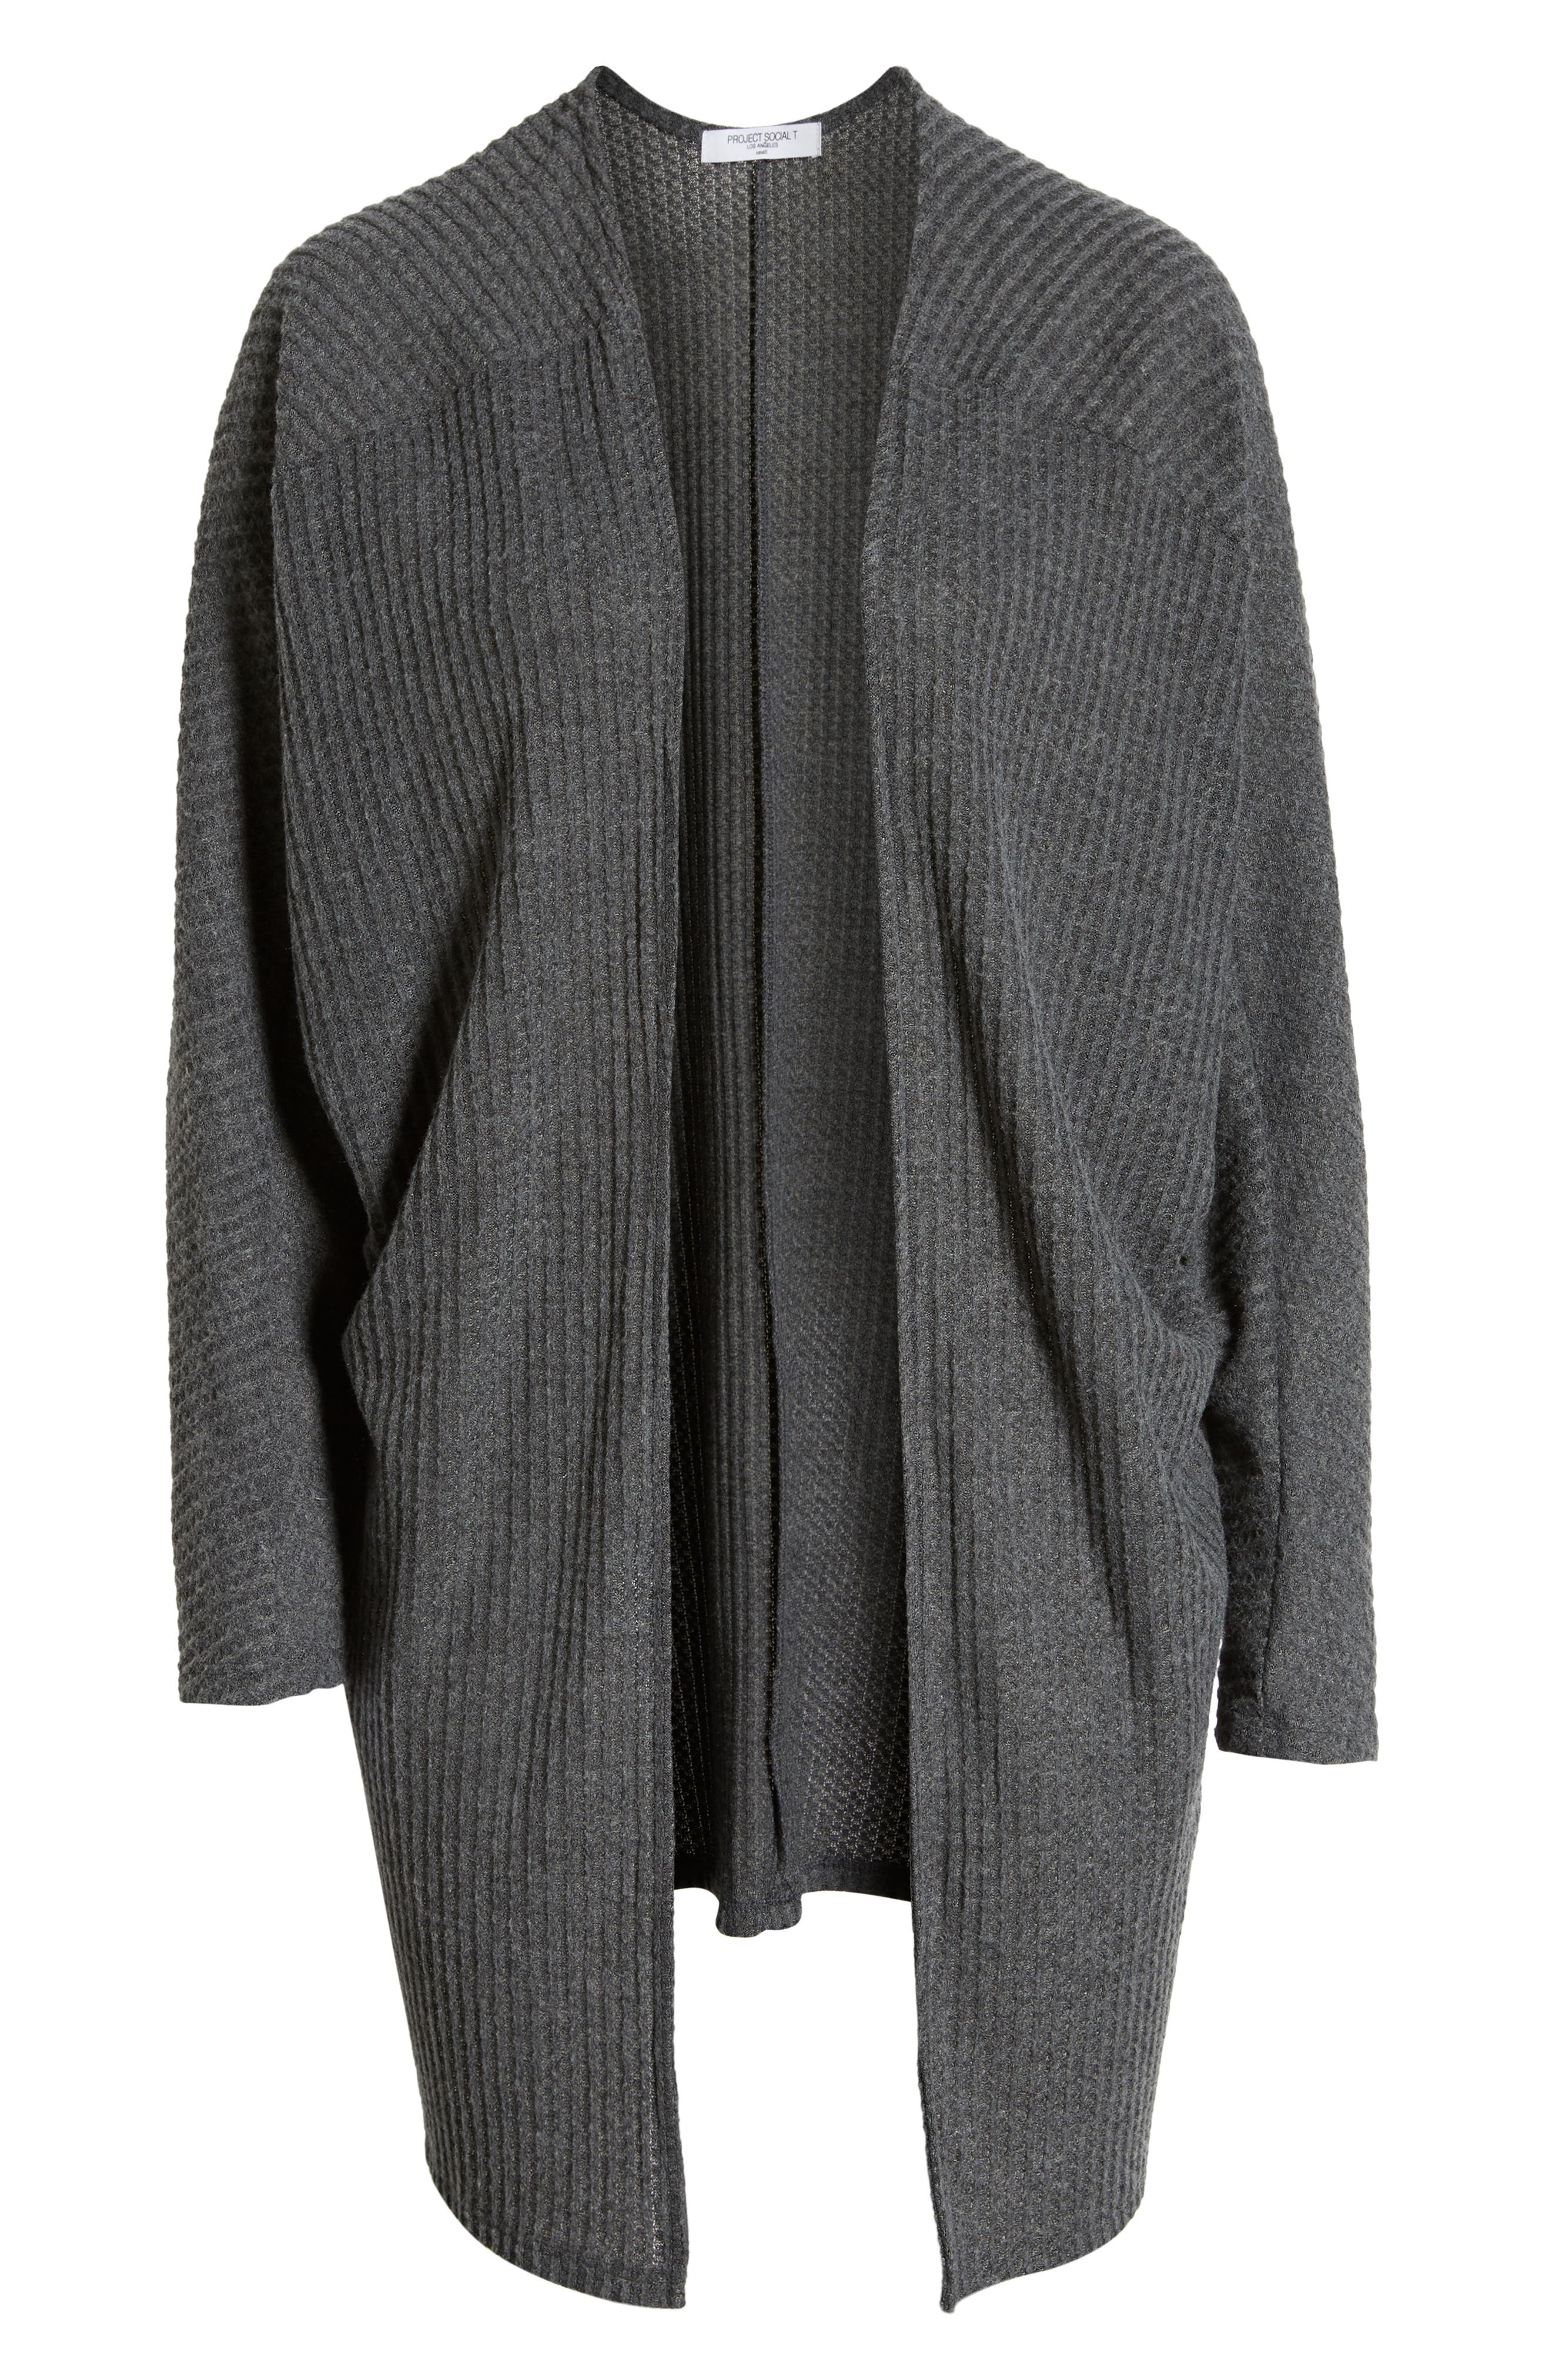 Keep It Casual Thermal Cardigan,                             Alternate thumbnail 6, color,                             CHARCOAL